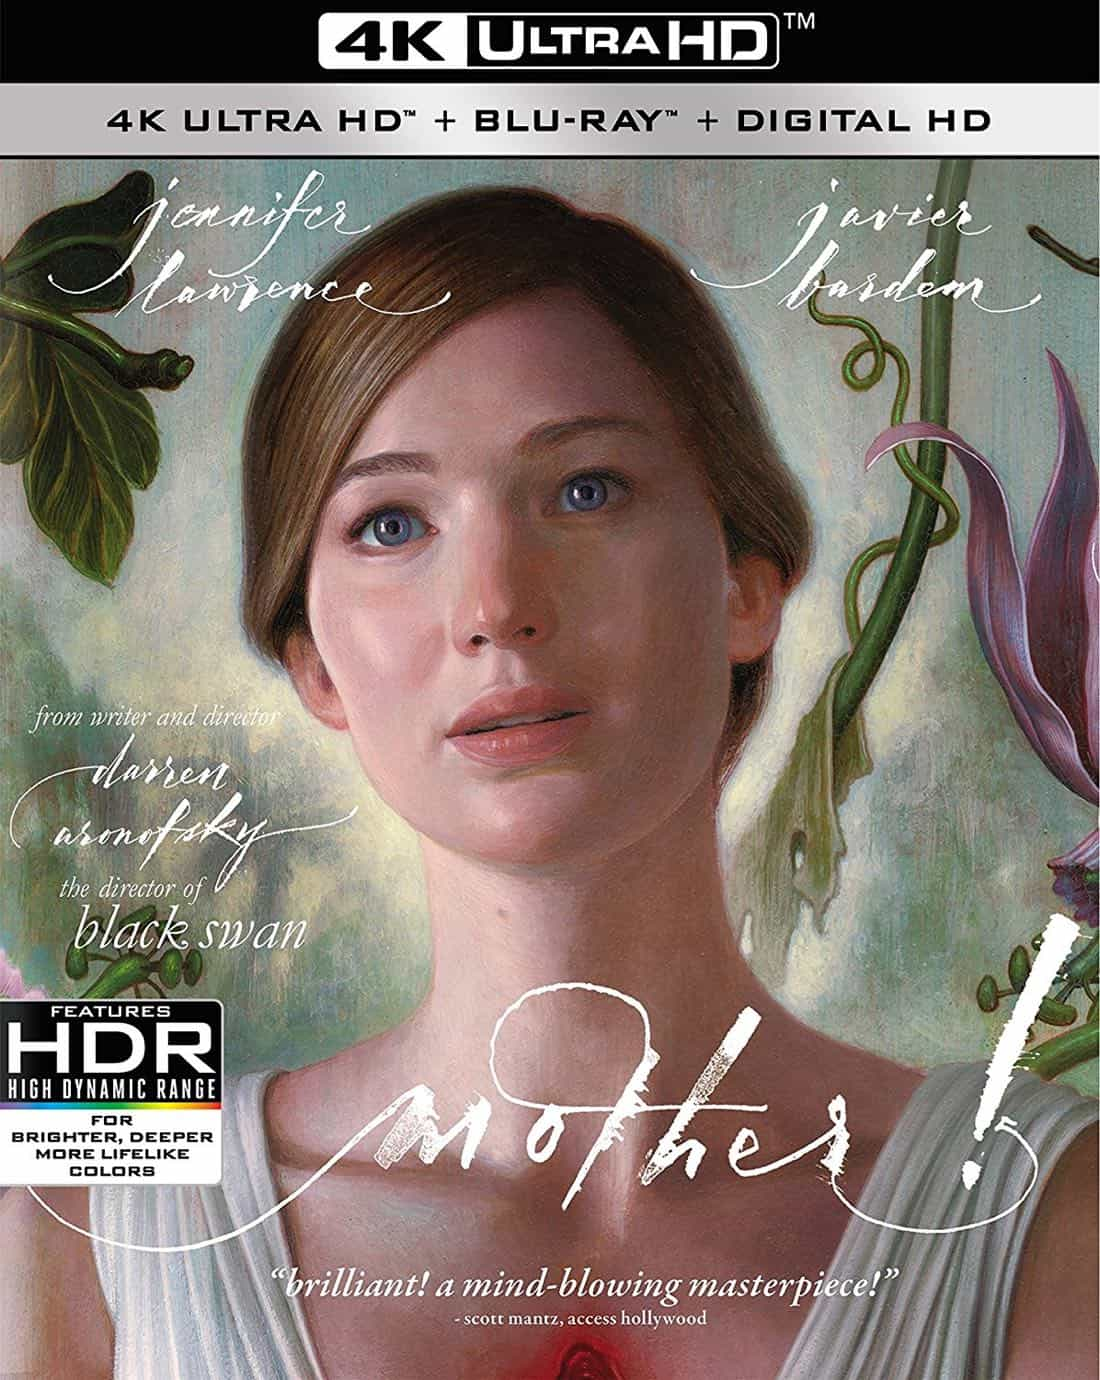 mother bluray 4k